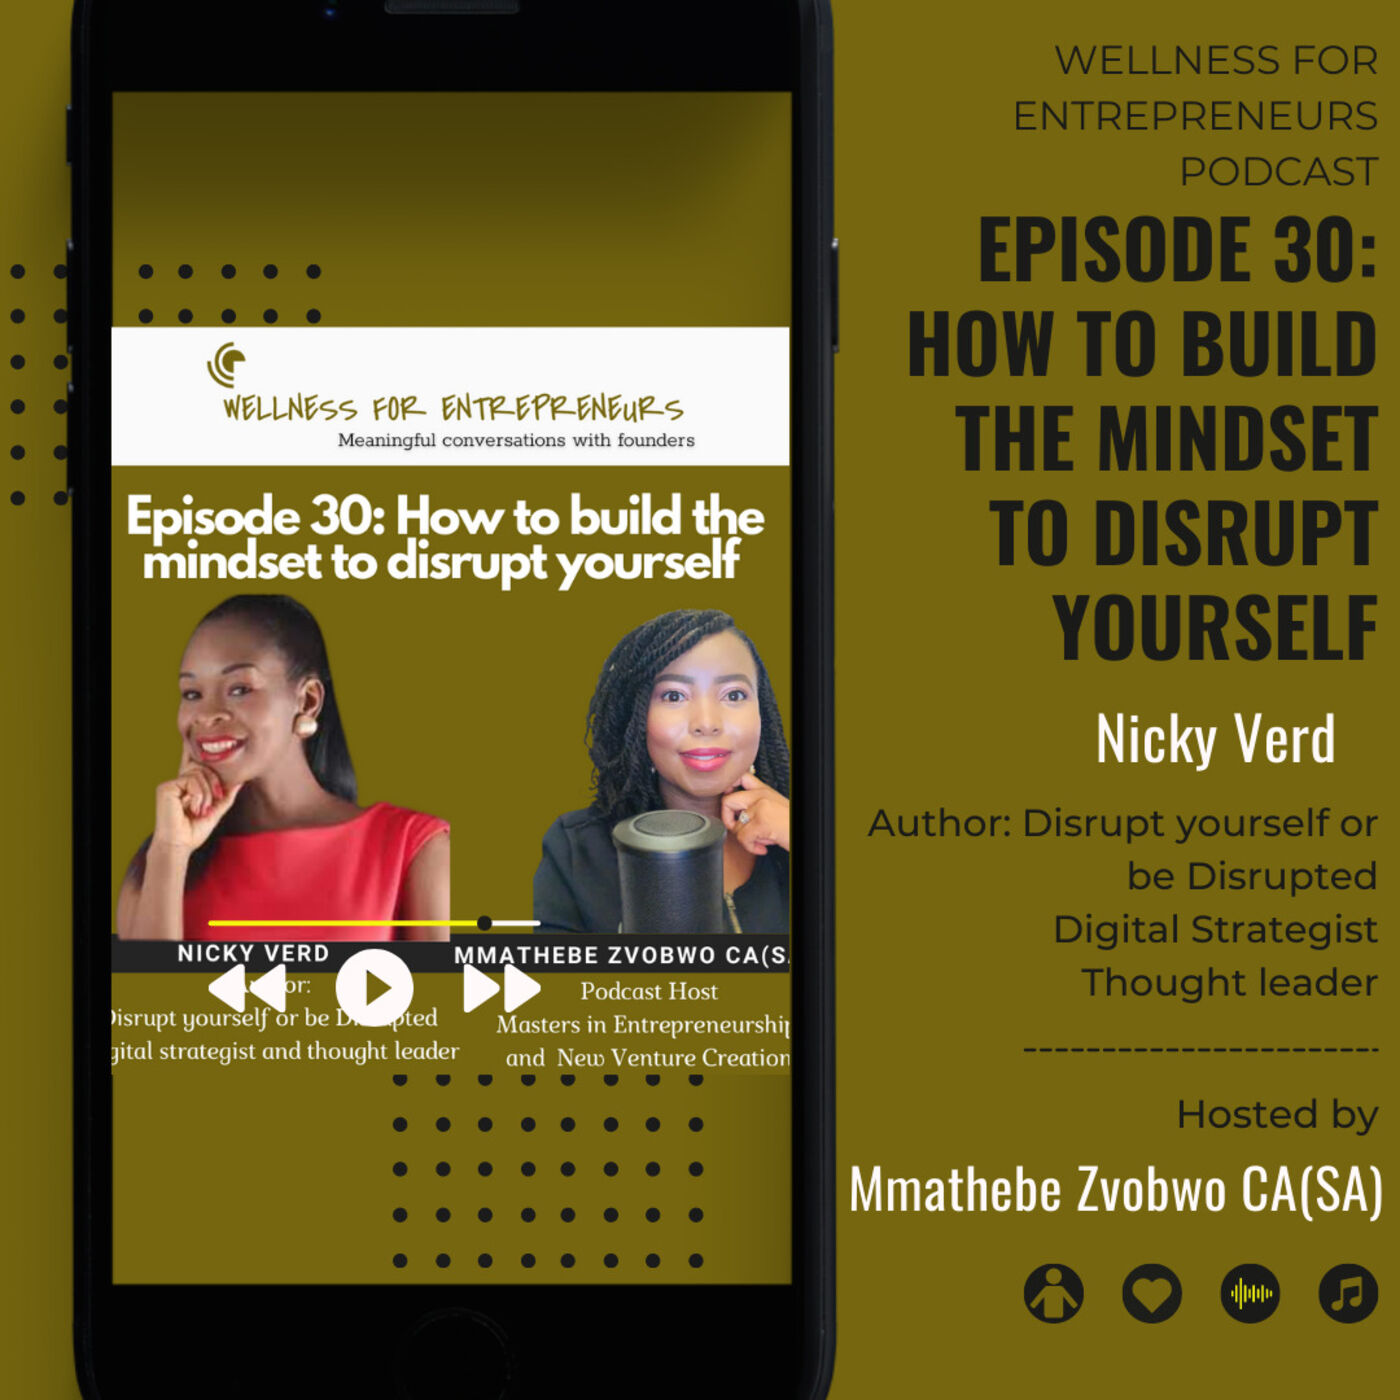 Episode 30: How to build the mindset to disrupt yourself, with Nicky Verd